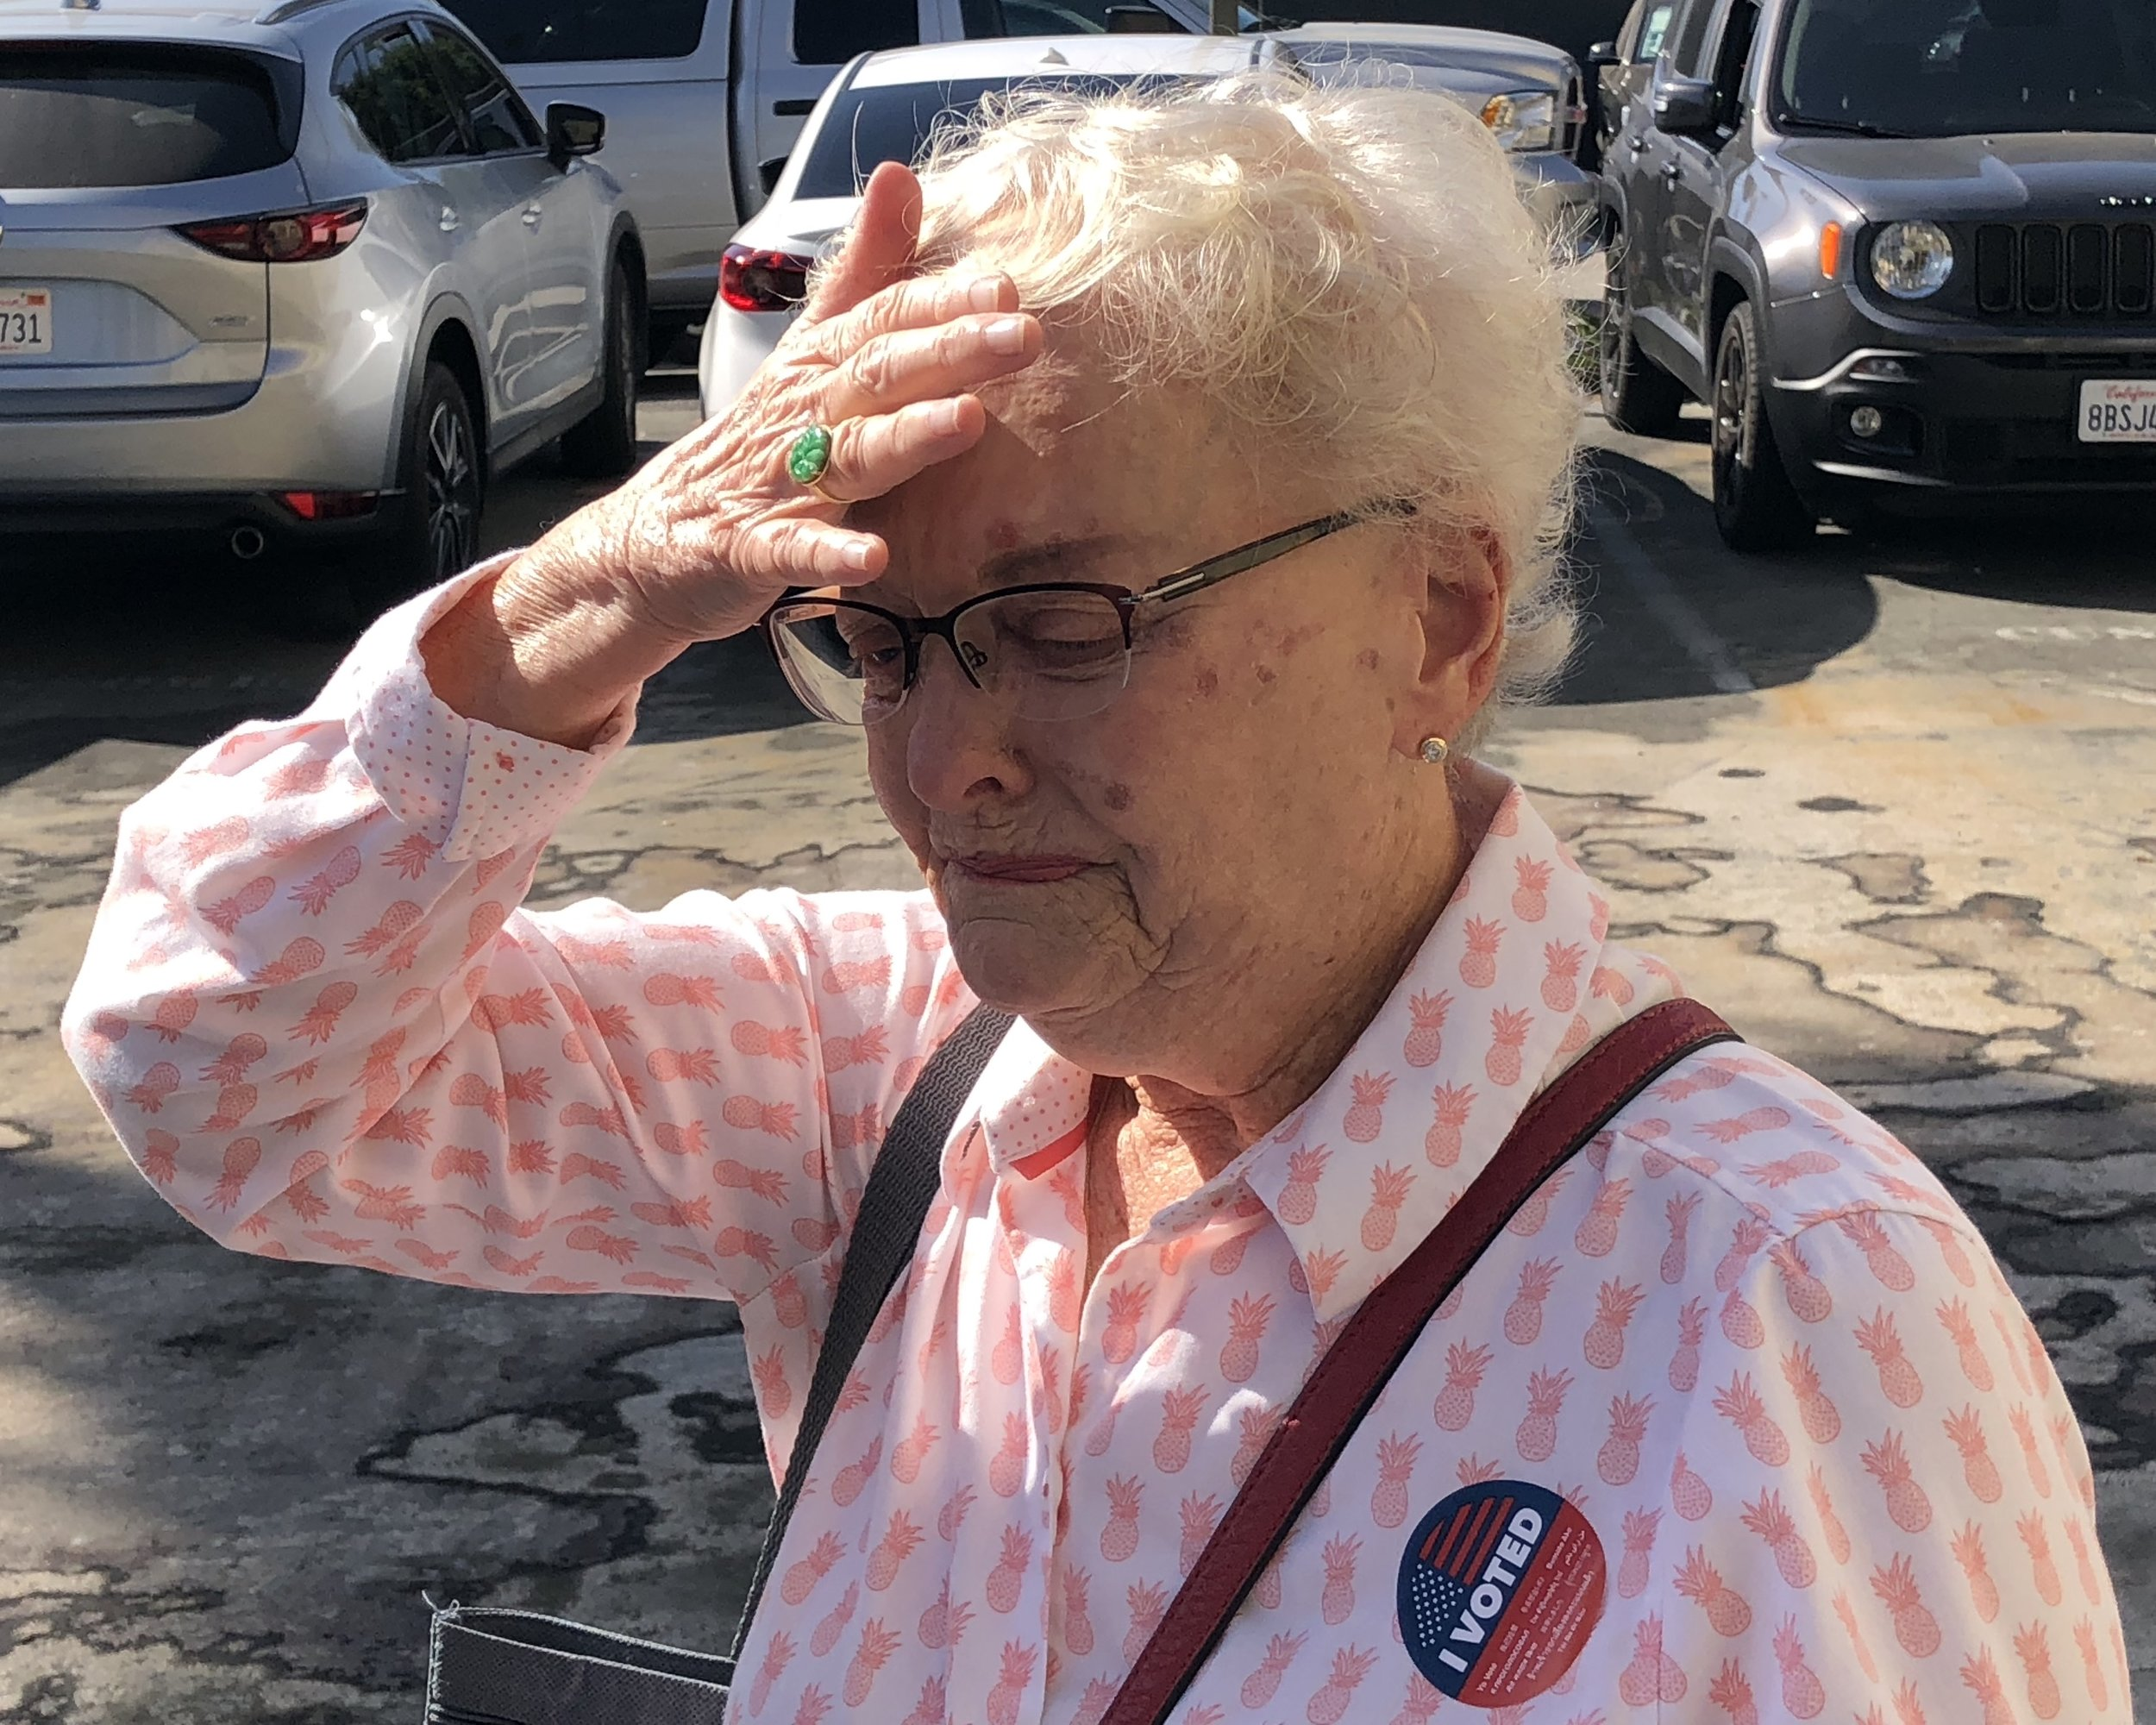 Santa Monica resident Patricia Olsen, 80, details her hope for the future of California after voting in the California General Election in Santa Monica, California on Tuesday, November 6, 2018. Olsen says that this particular midterm election has been her most poignant and emotional voting experience. (Oskar Zinnemann/ Corsair Staff)